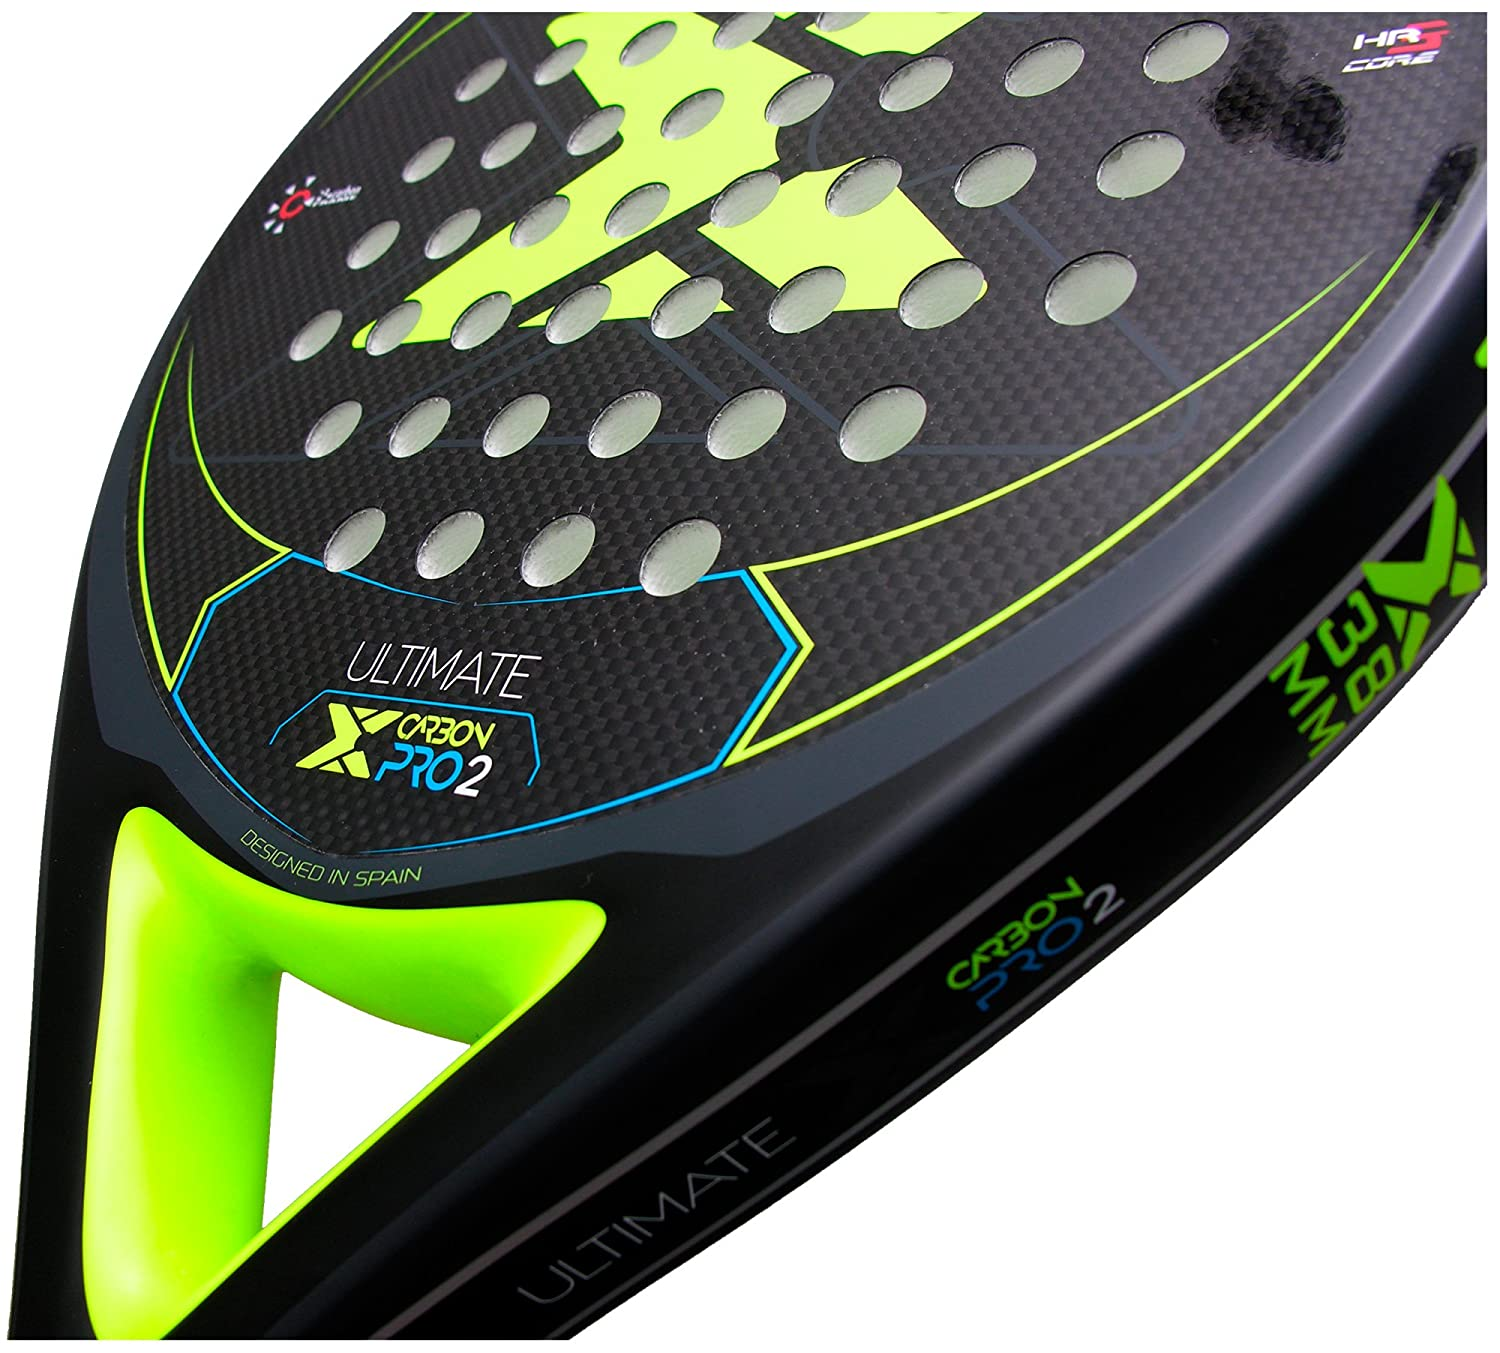 Pala pádel Nox Ultimate Carbon Pro 2 Yellow: Amazon.es: Deportes y ...